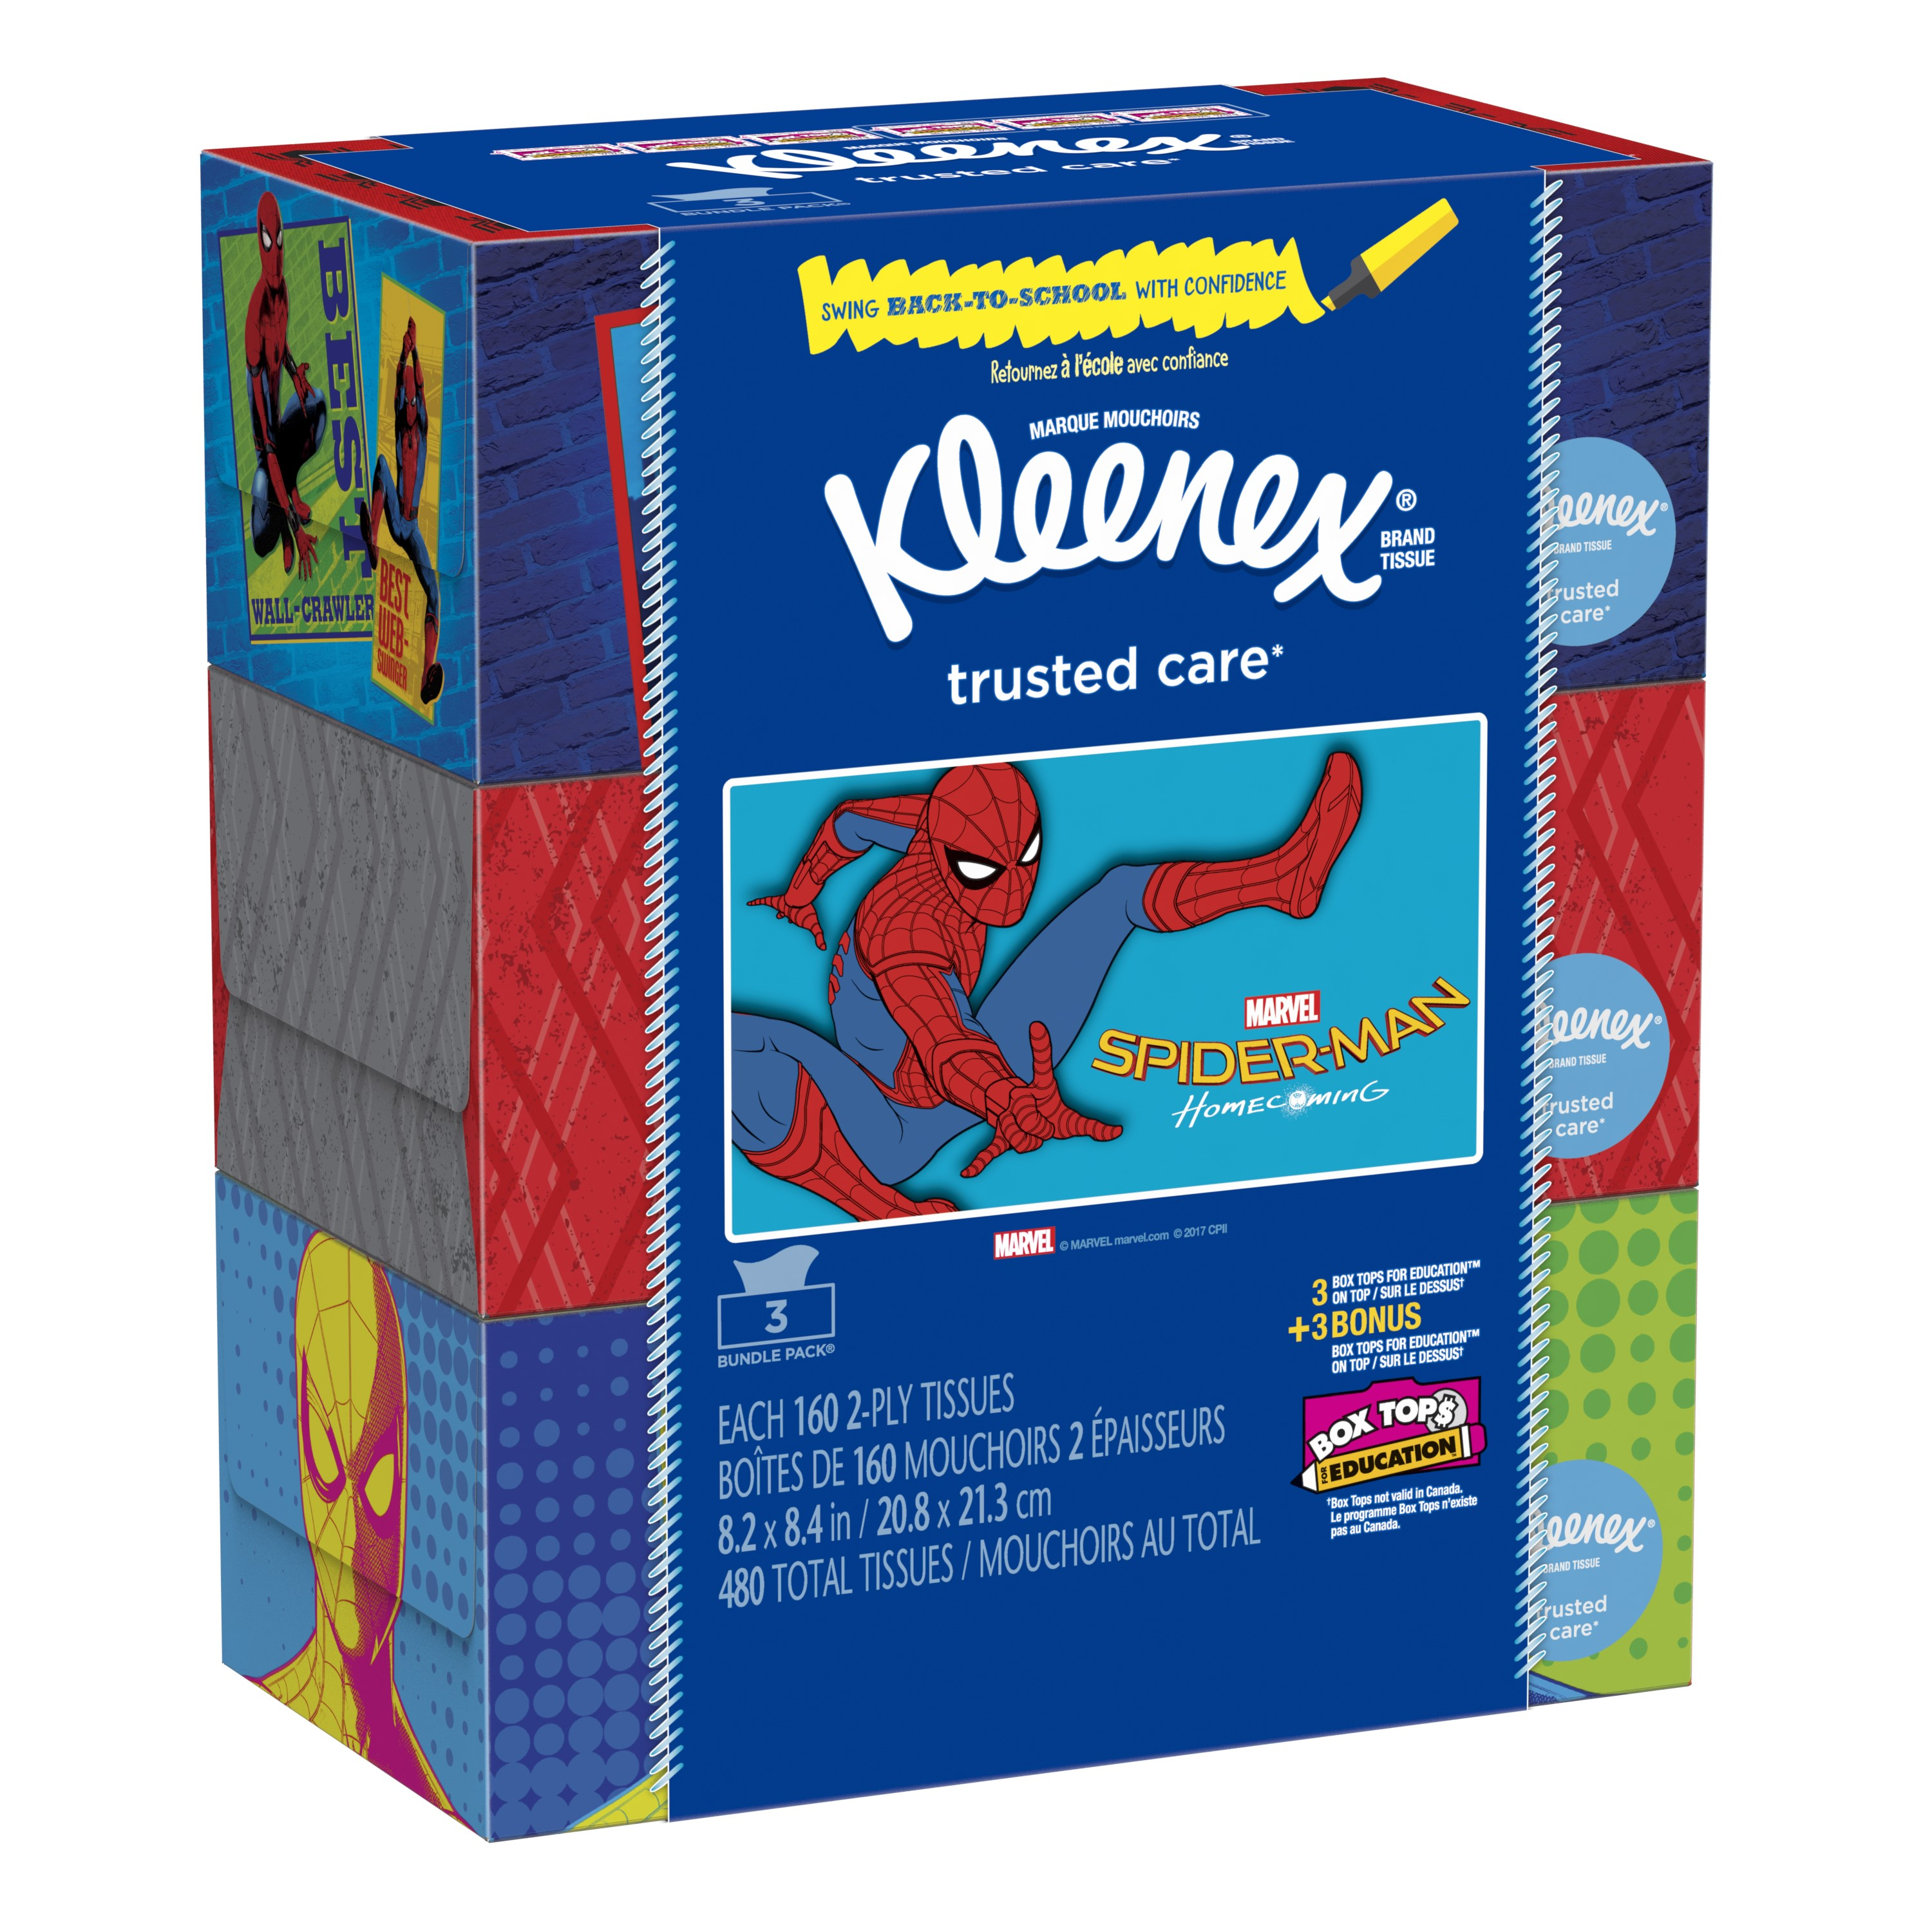 Kleenex Everyday Facial Tissues, 160 Sheets/Box, 3 Ct